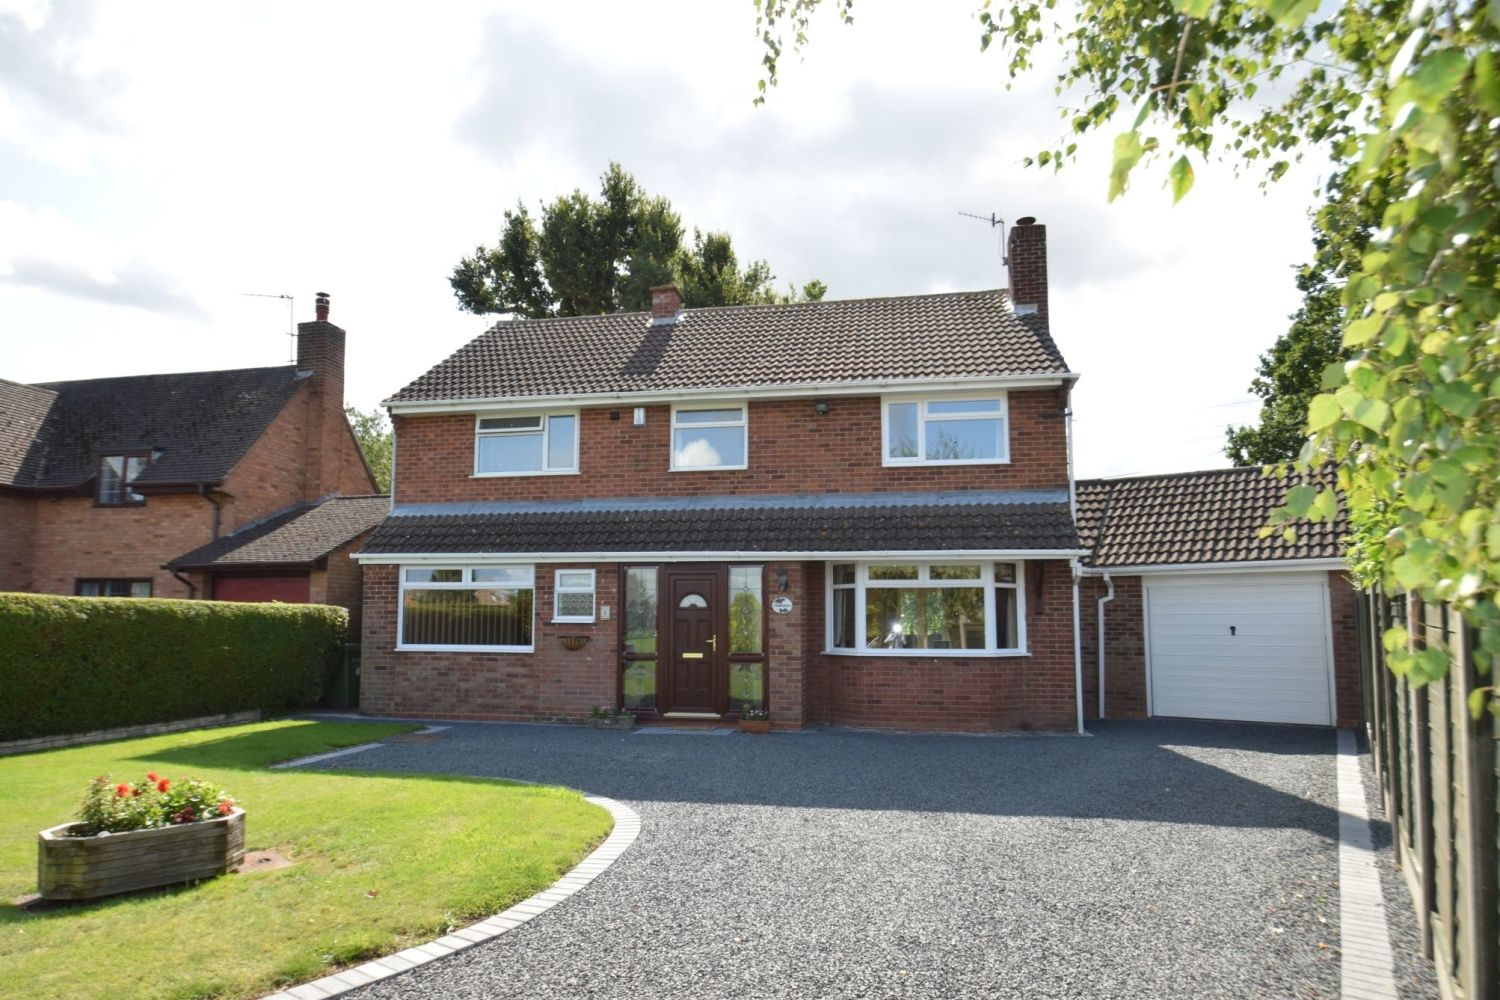 4 bed detached for sale in St. Richards Close, Wychbold - Property Image 1